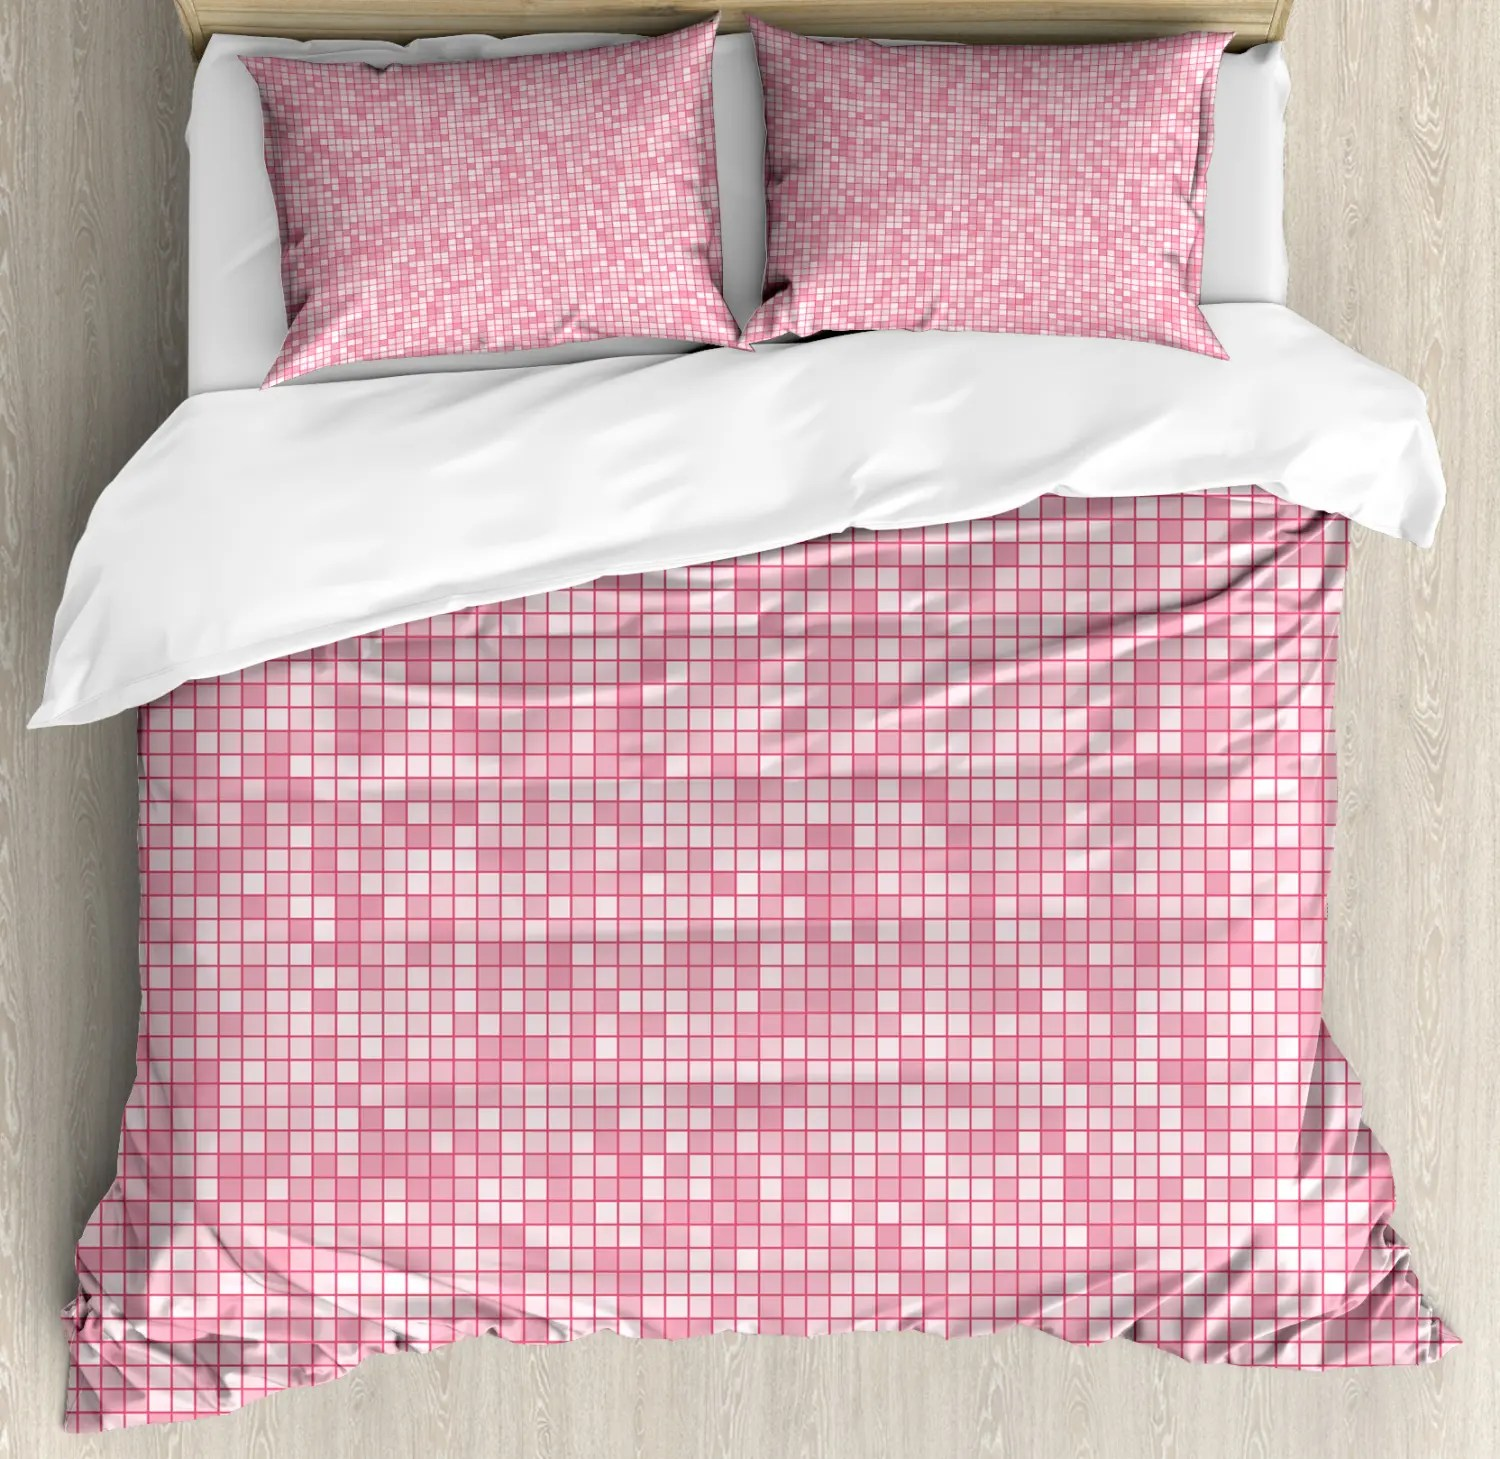 Pink Duvet Cover Details About Pink And White Duvet Cover Set Twin Queen King Sizes With Pillow Shams Bedding